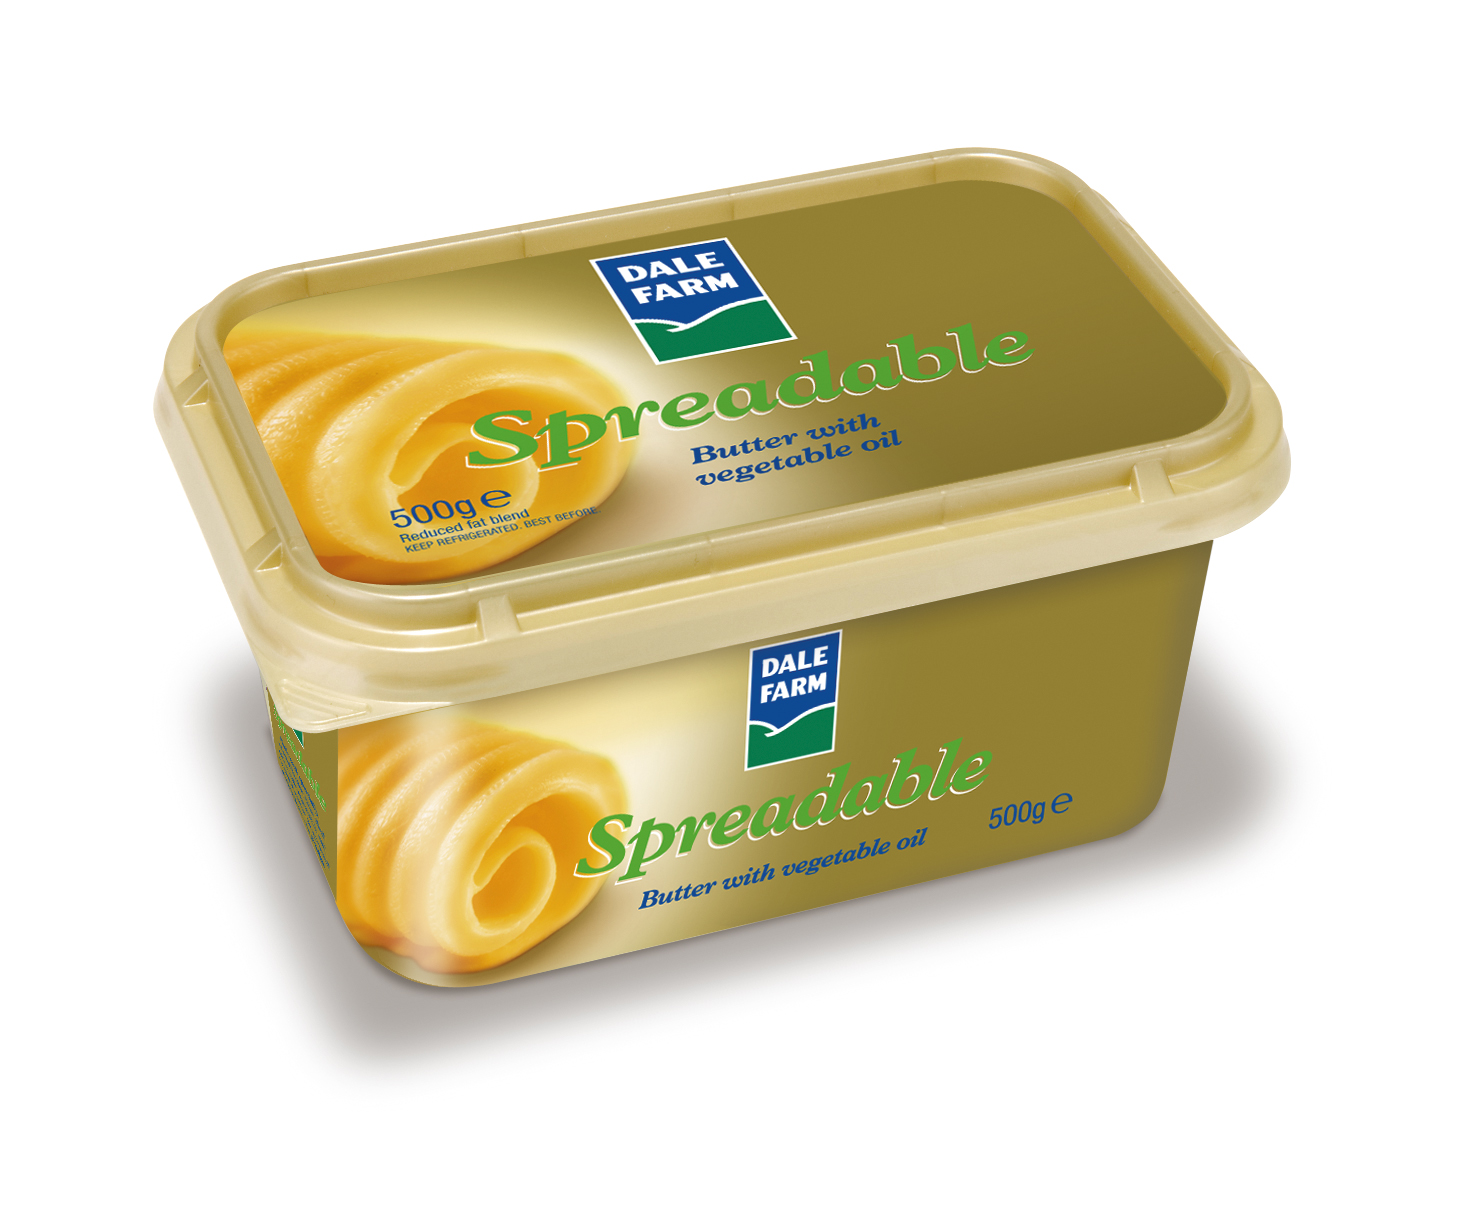 Dale Farm Spreadable 500g